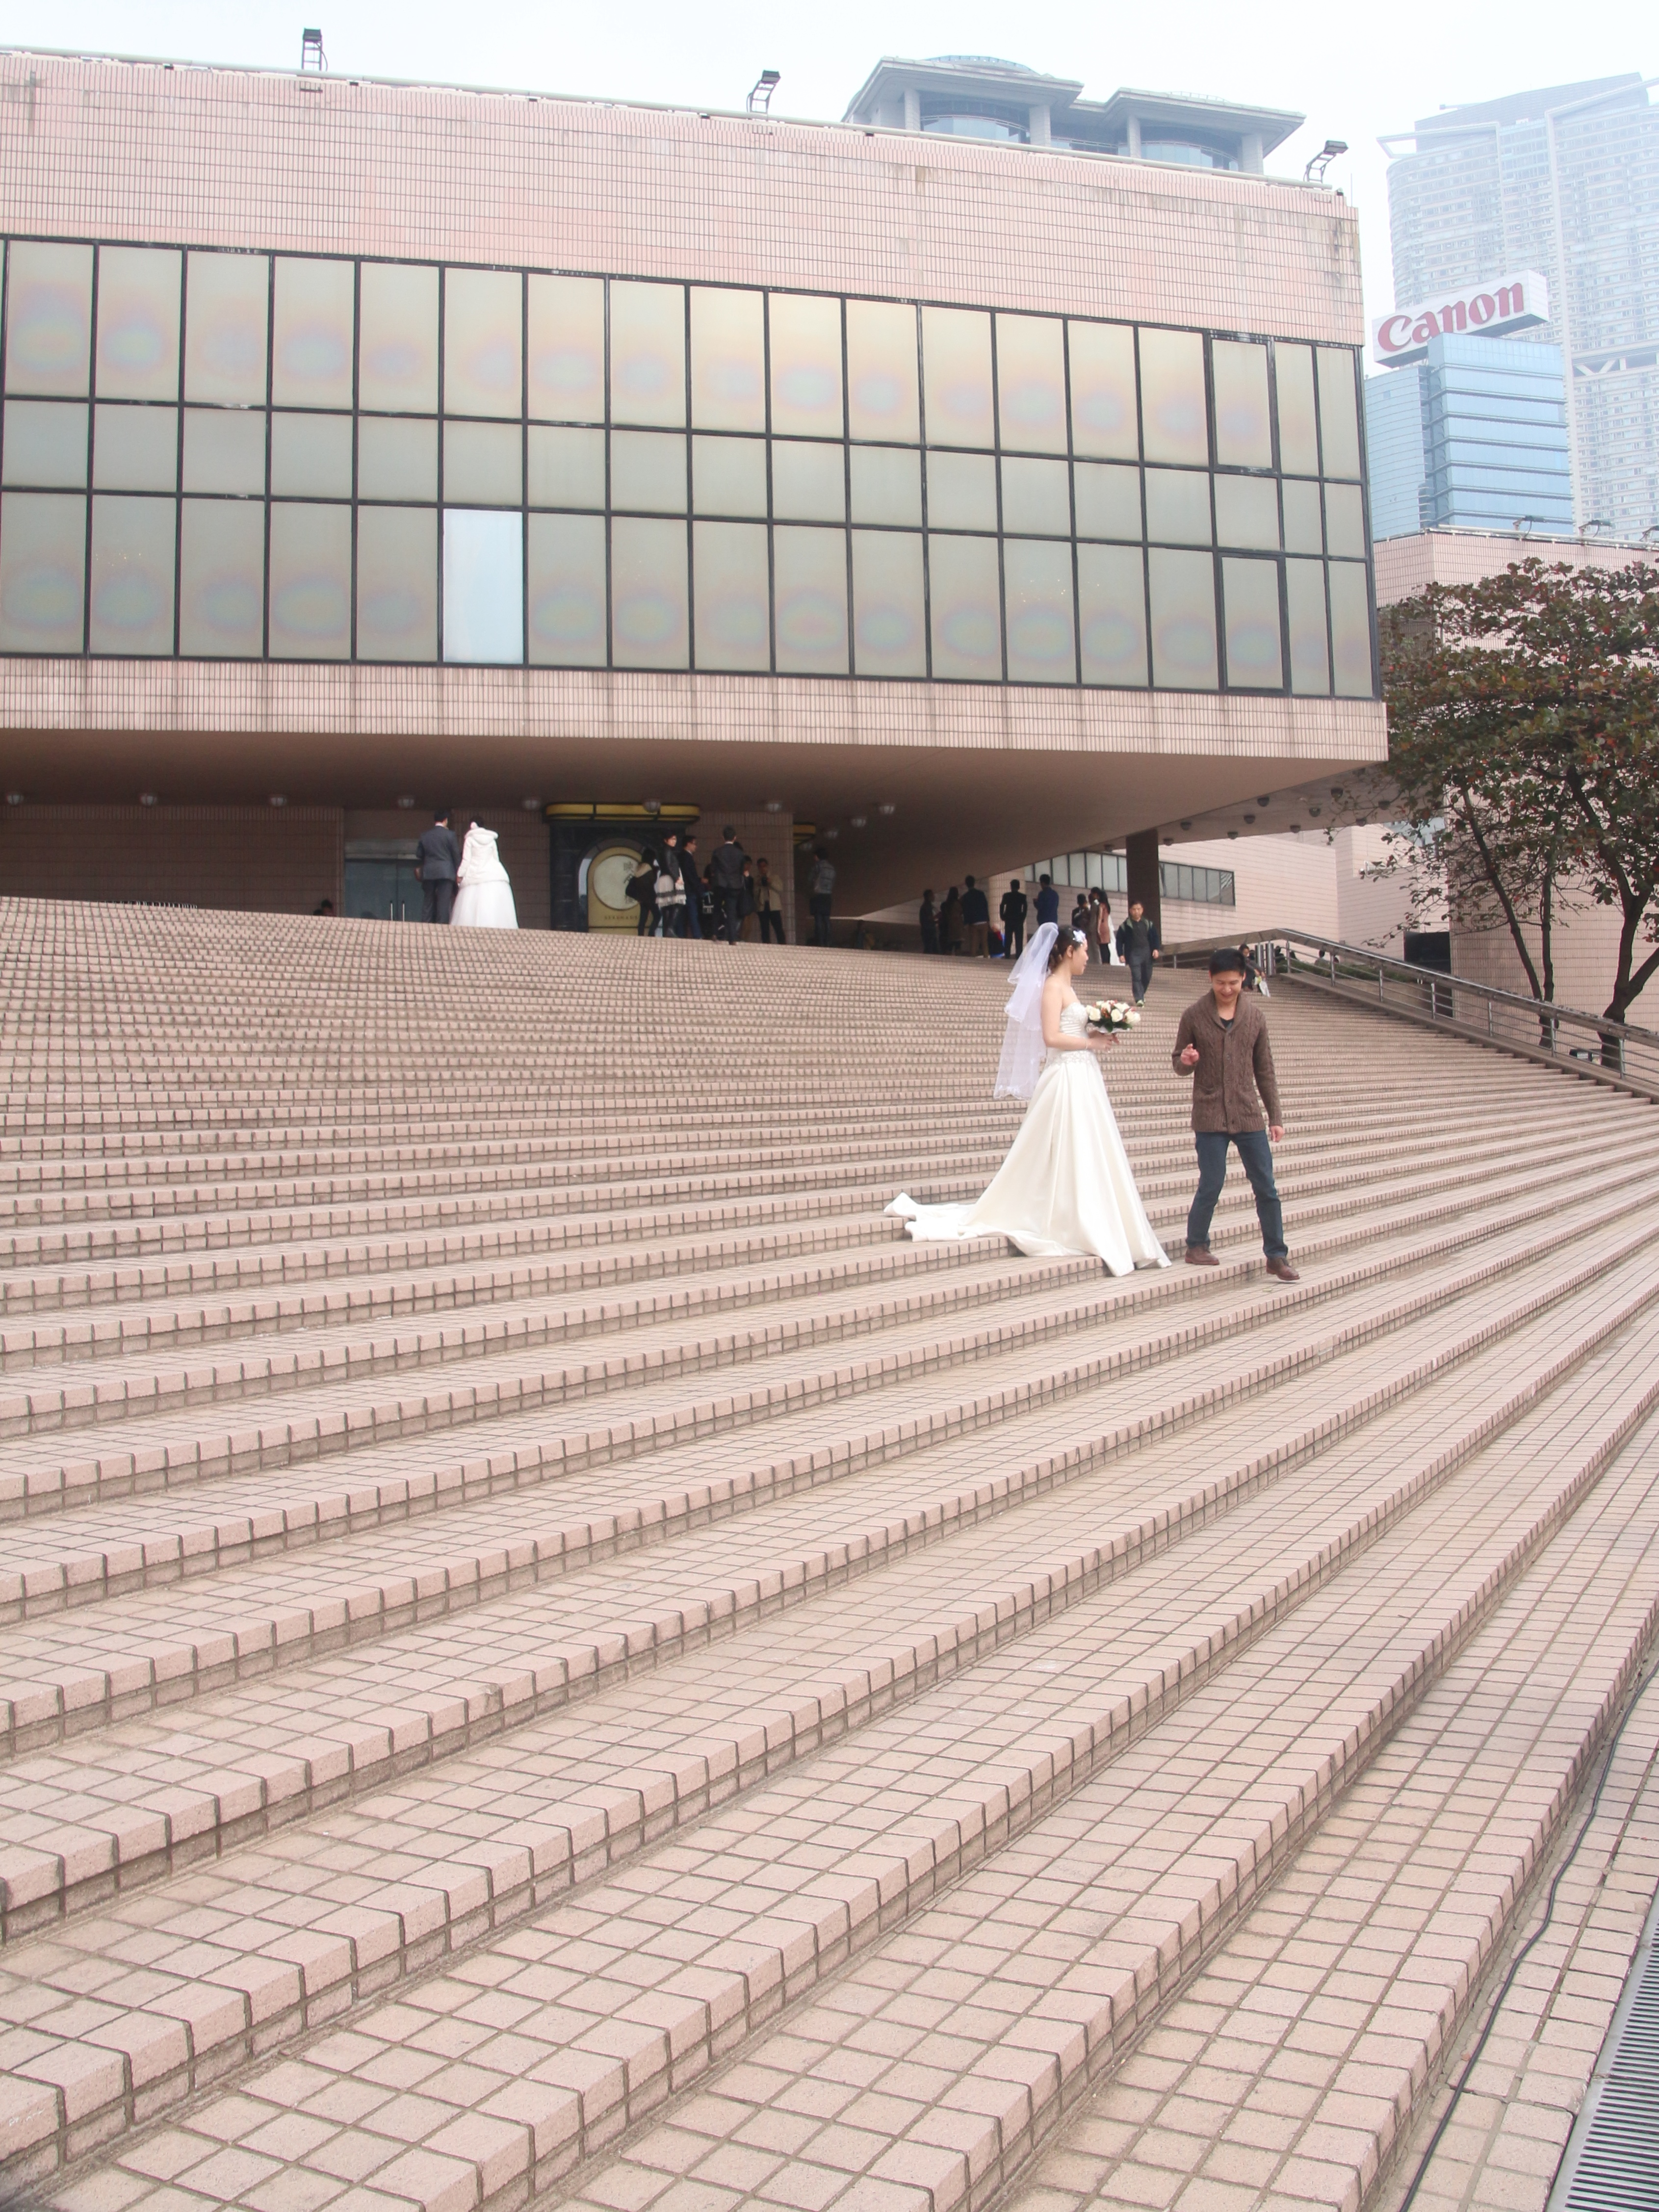 the wedding steps author lucke charlie witnessed